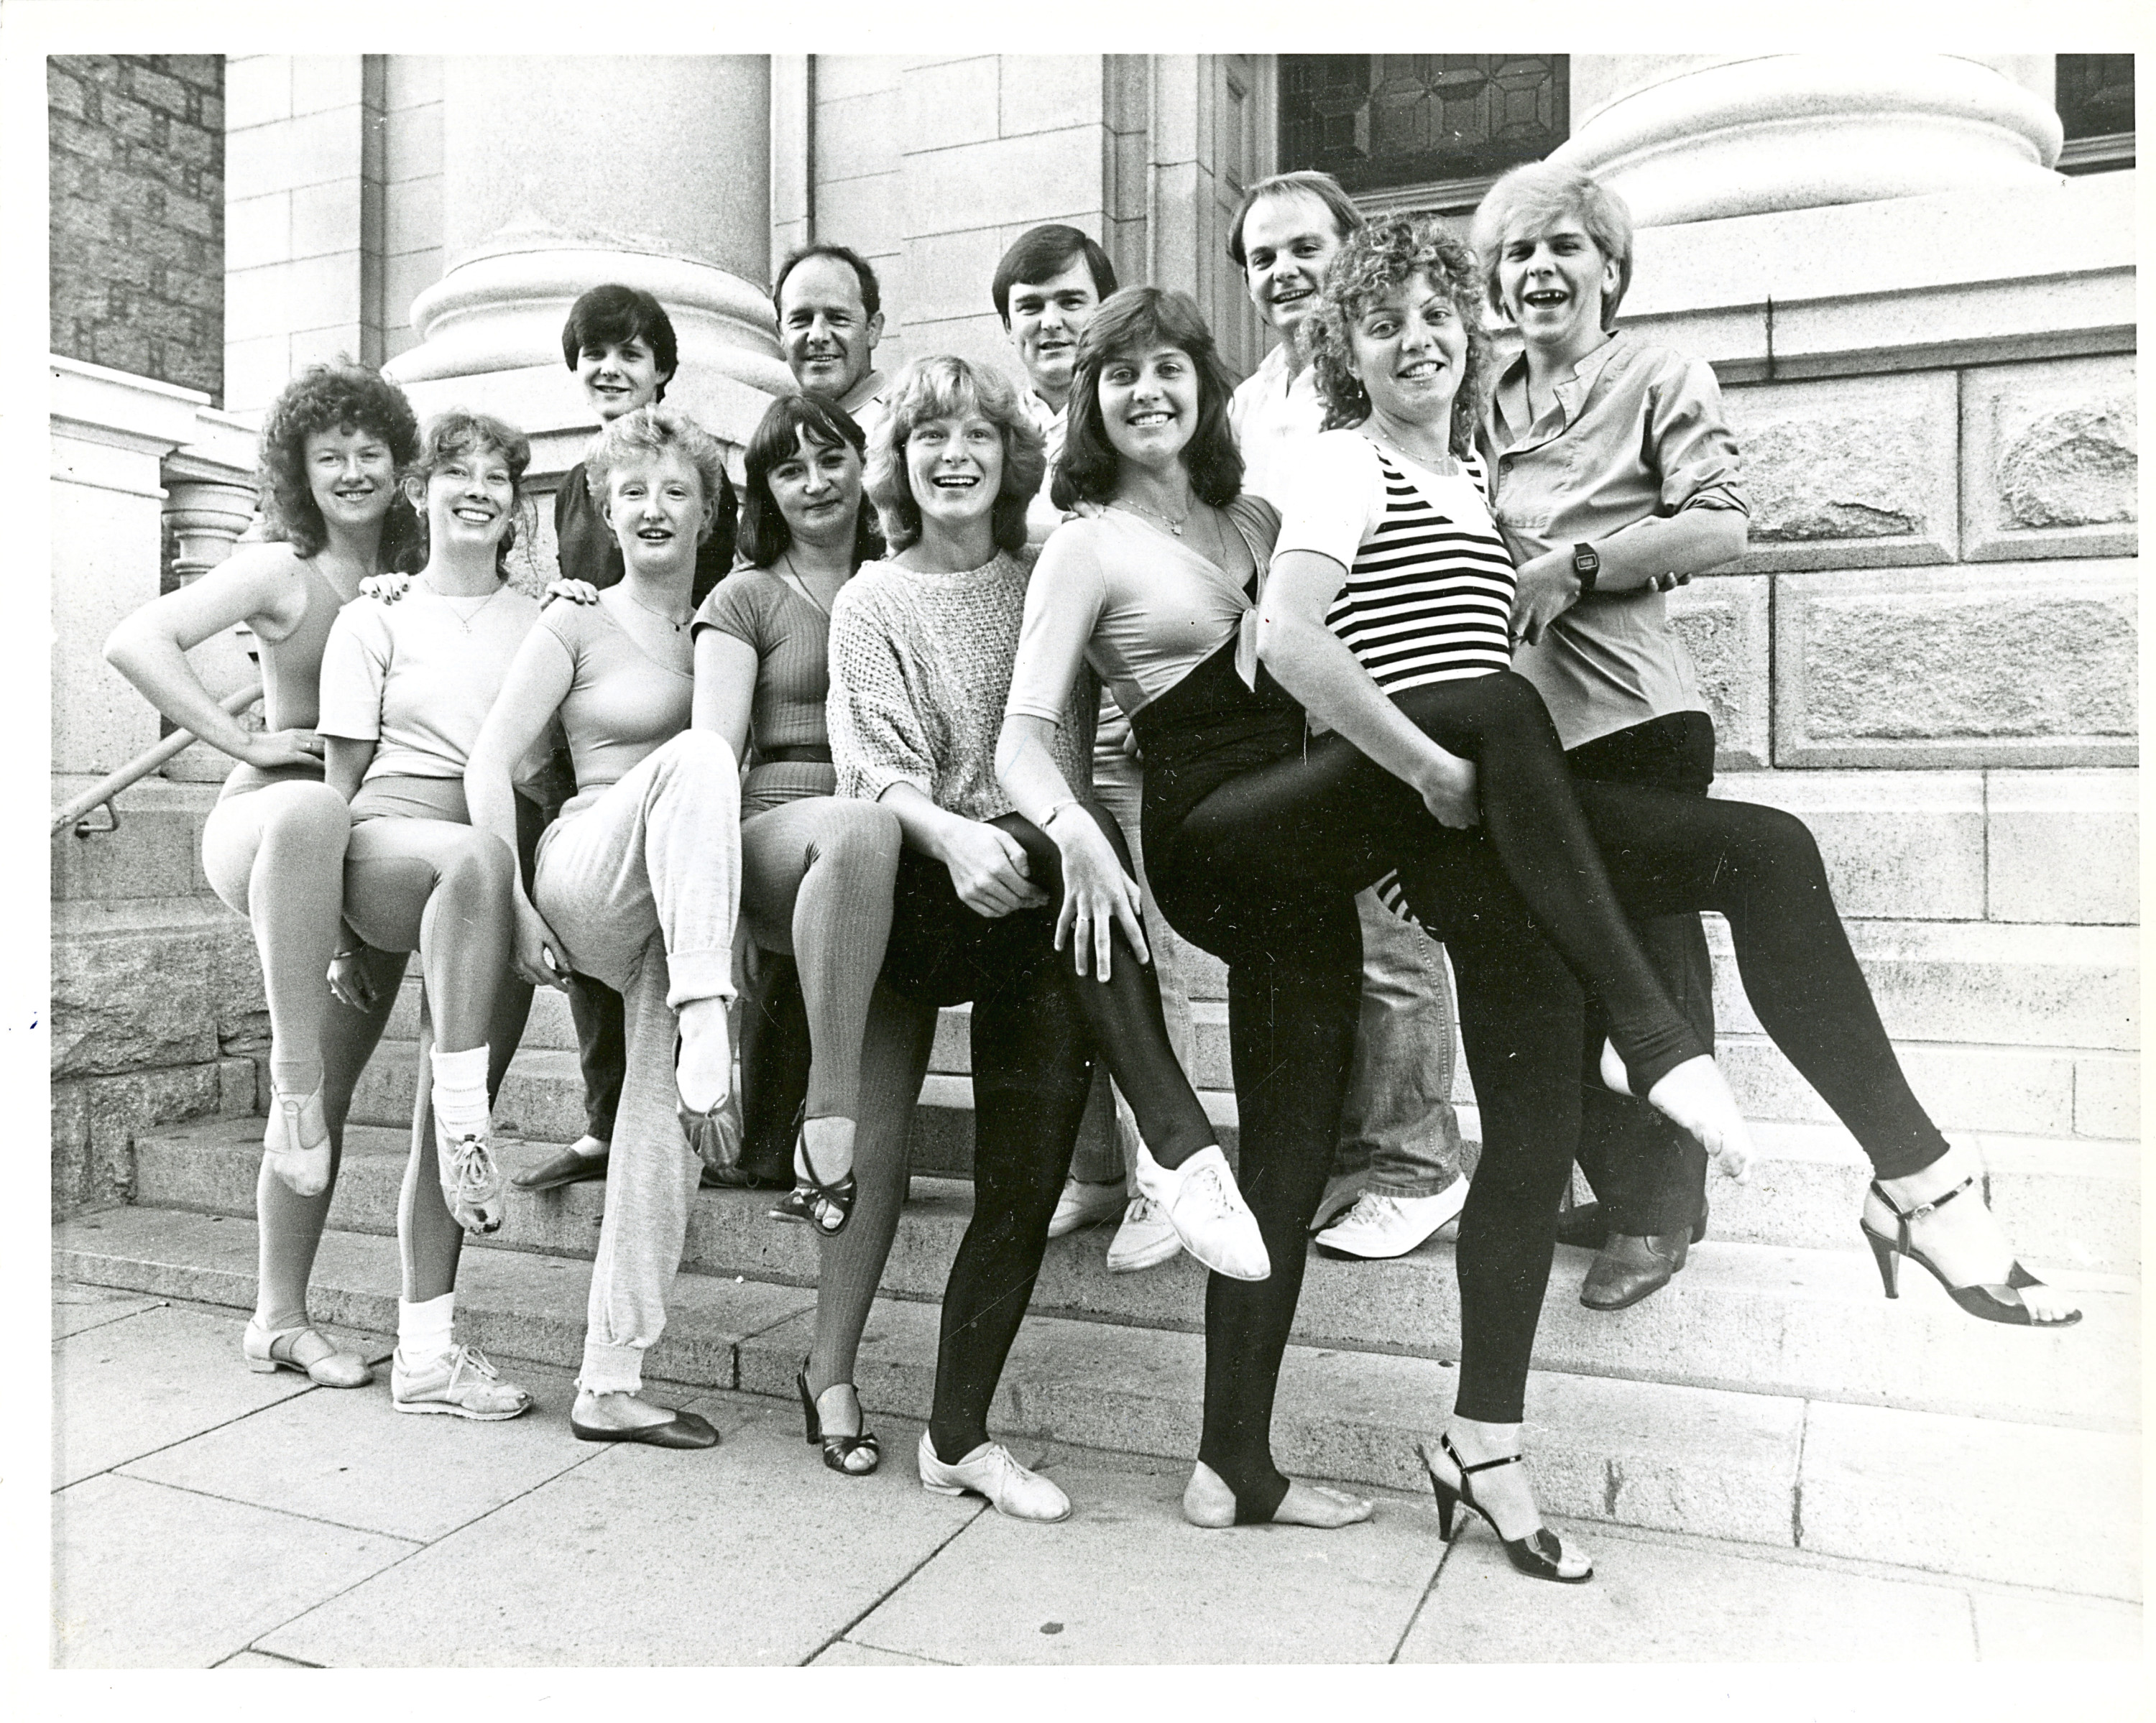 1984: Cast members from Guys and Dolls put their best foot forward